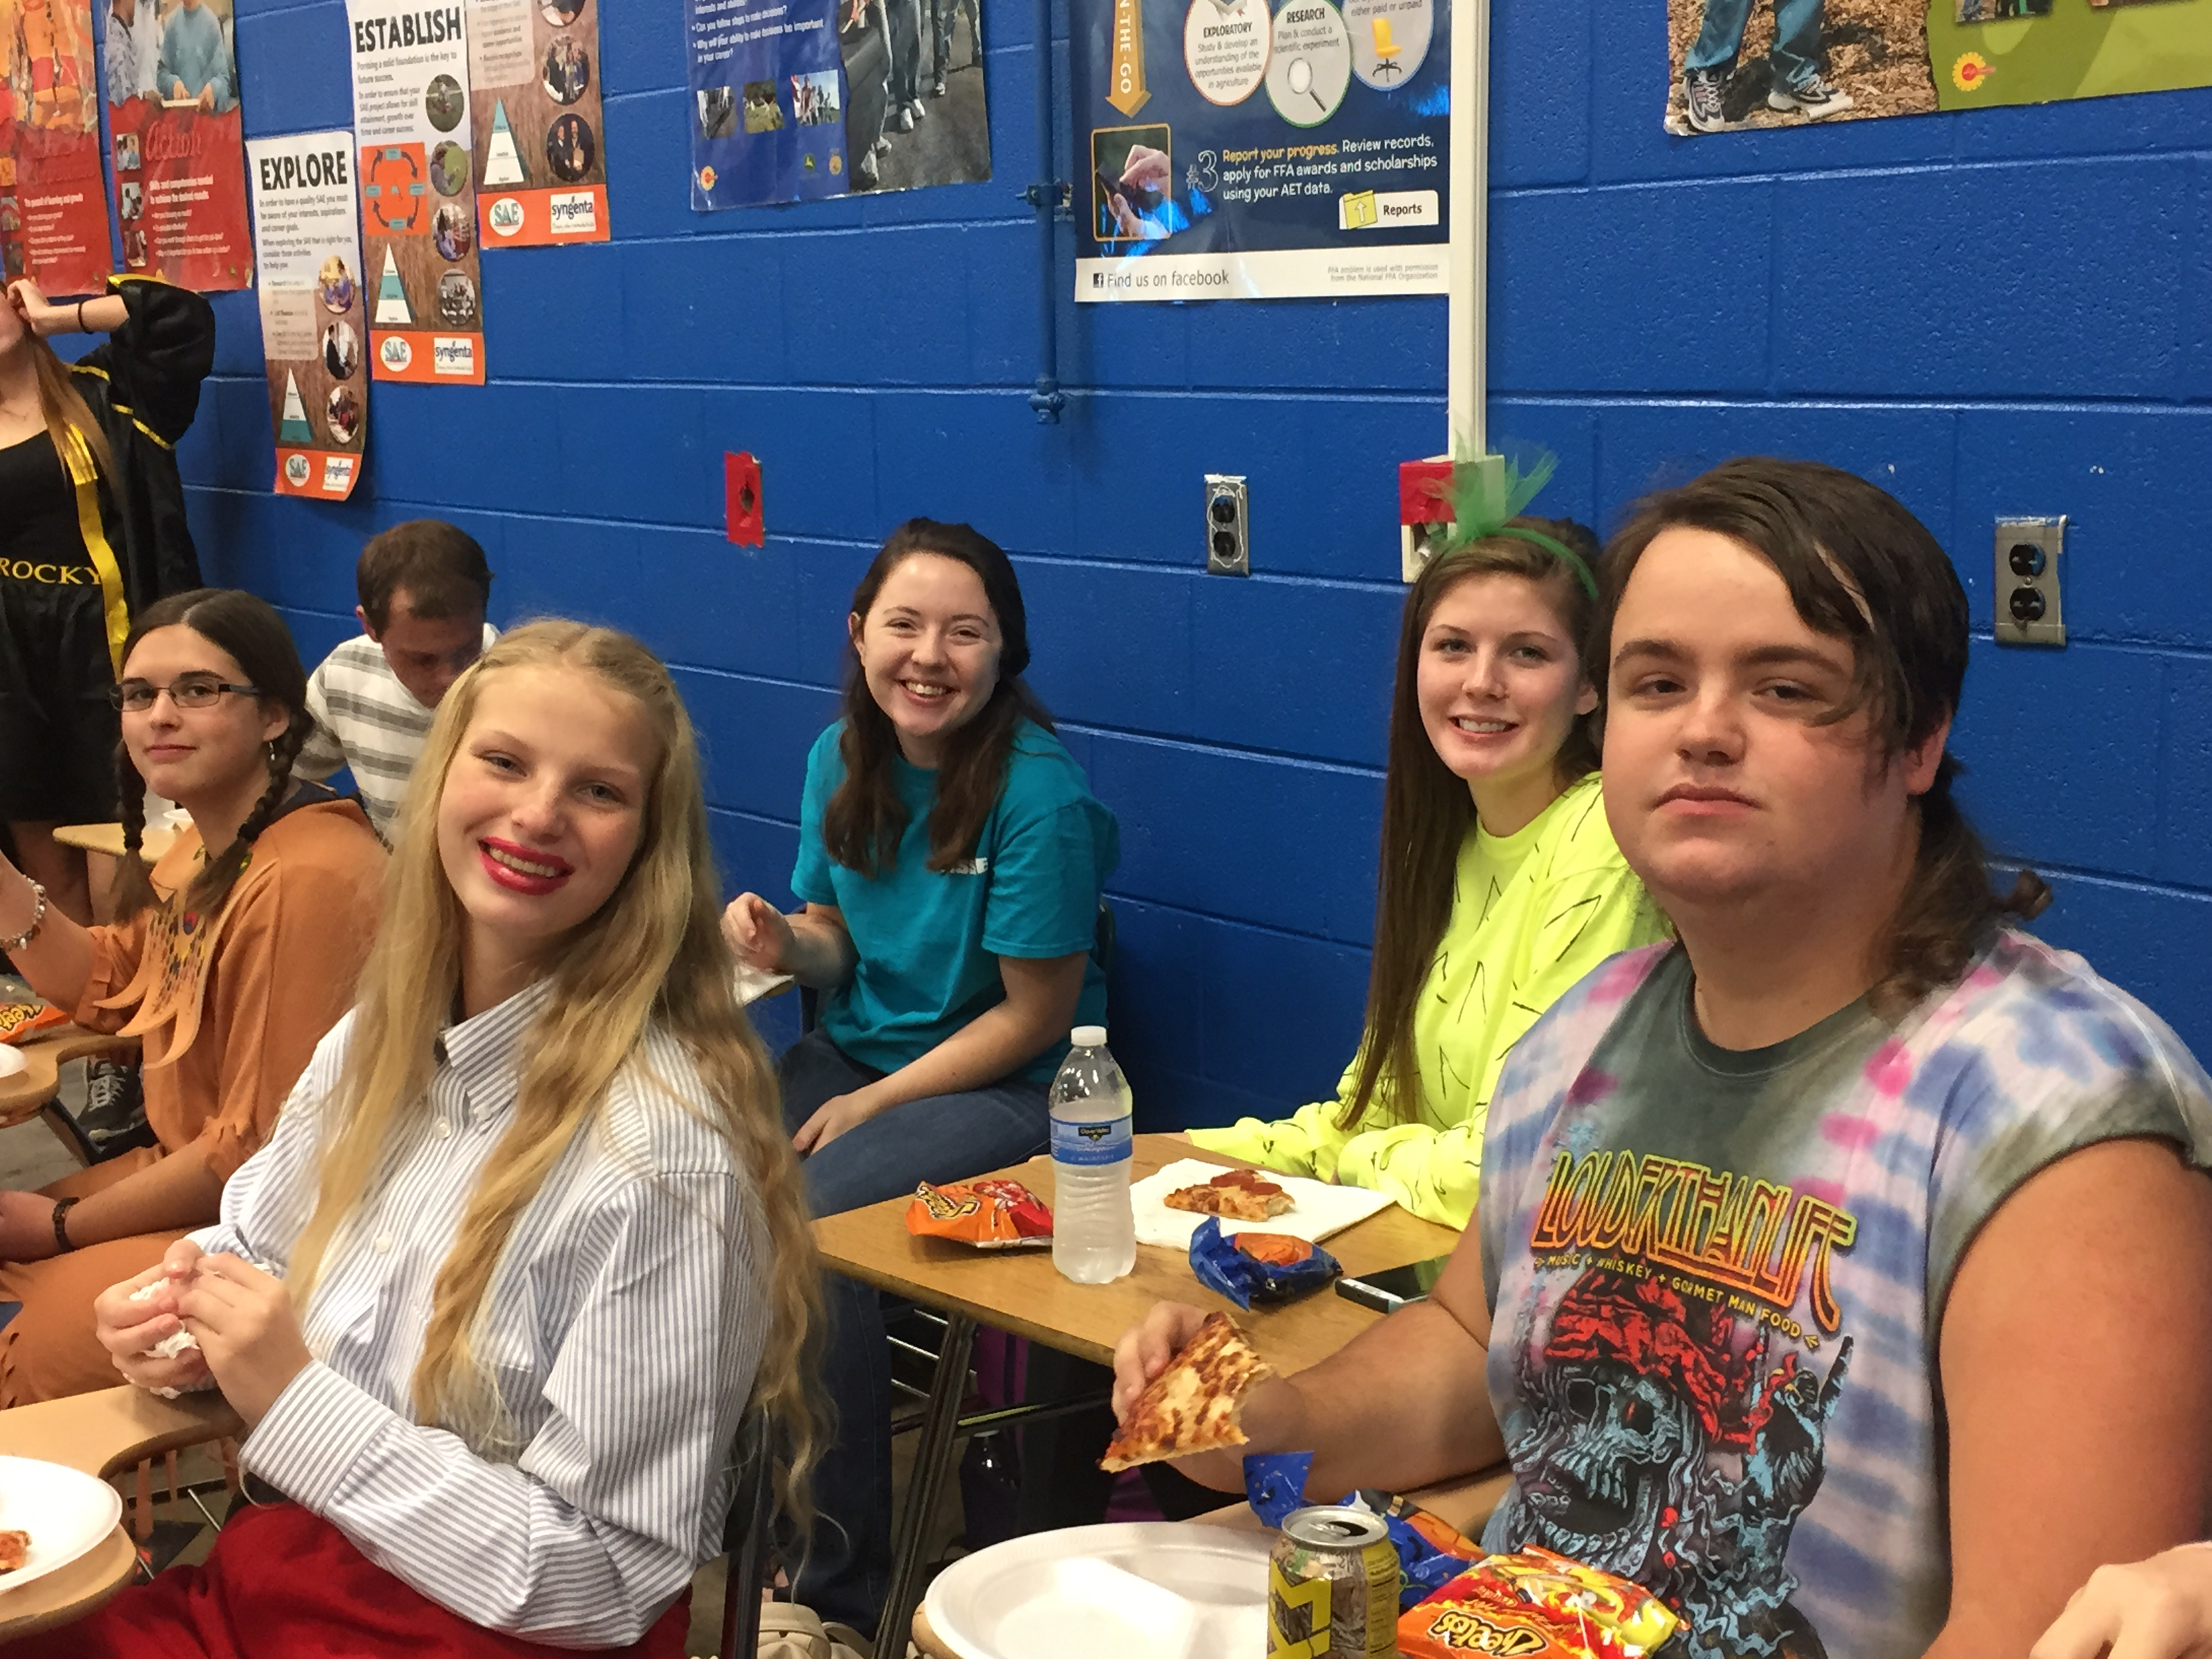 A College and Career Ready Halloween Party was held on October 31st to recognize students who have attained the level of college and career readiness as reflected in their ACT scores, Compass scores, or vocational studies exams.